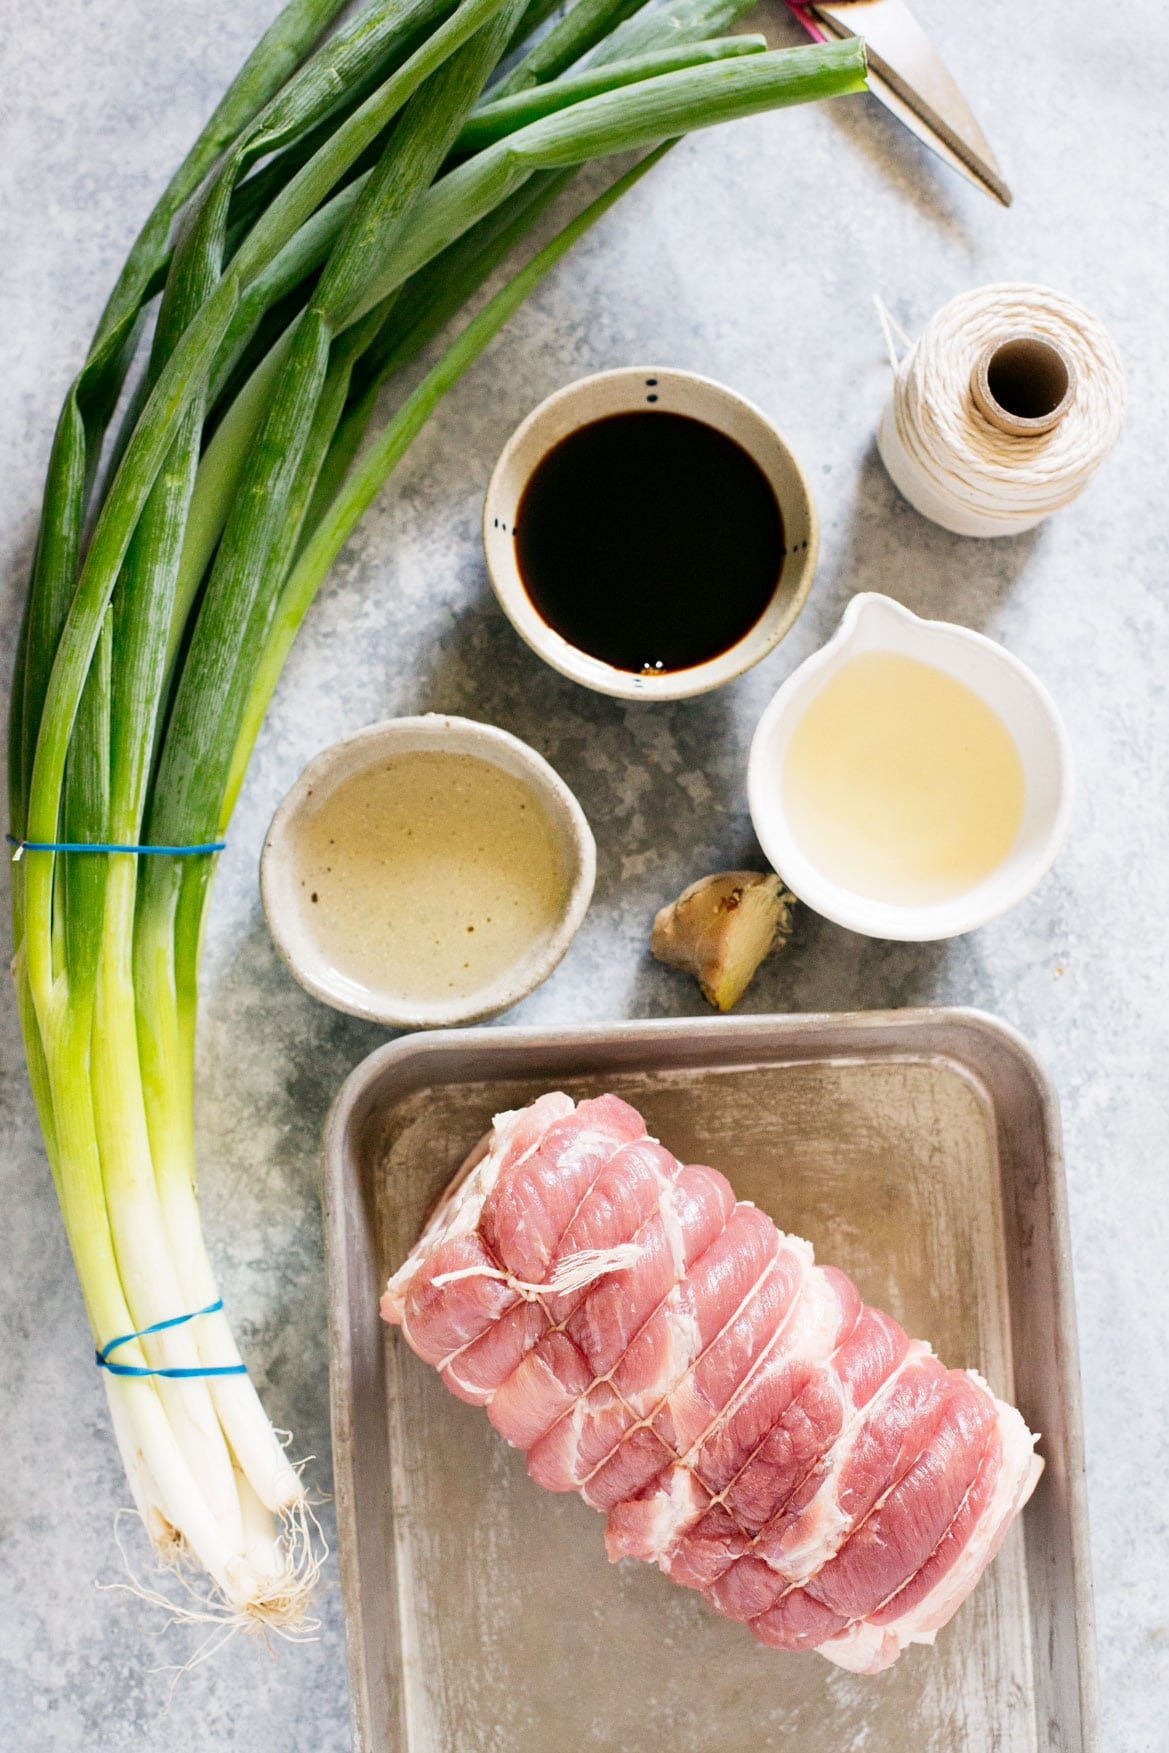 ingredients of the ramen pork Chashu